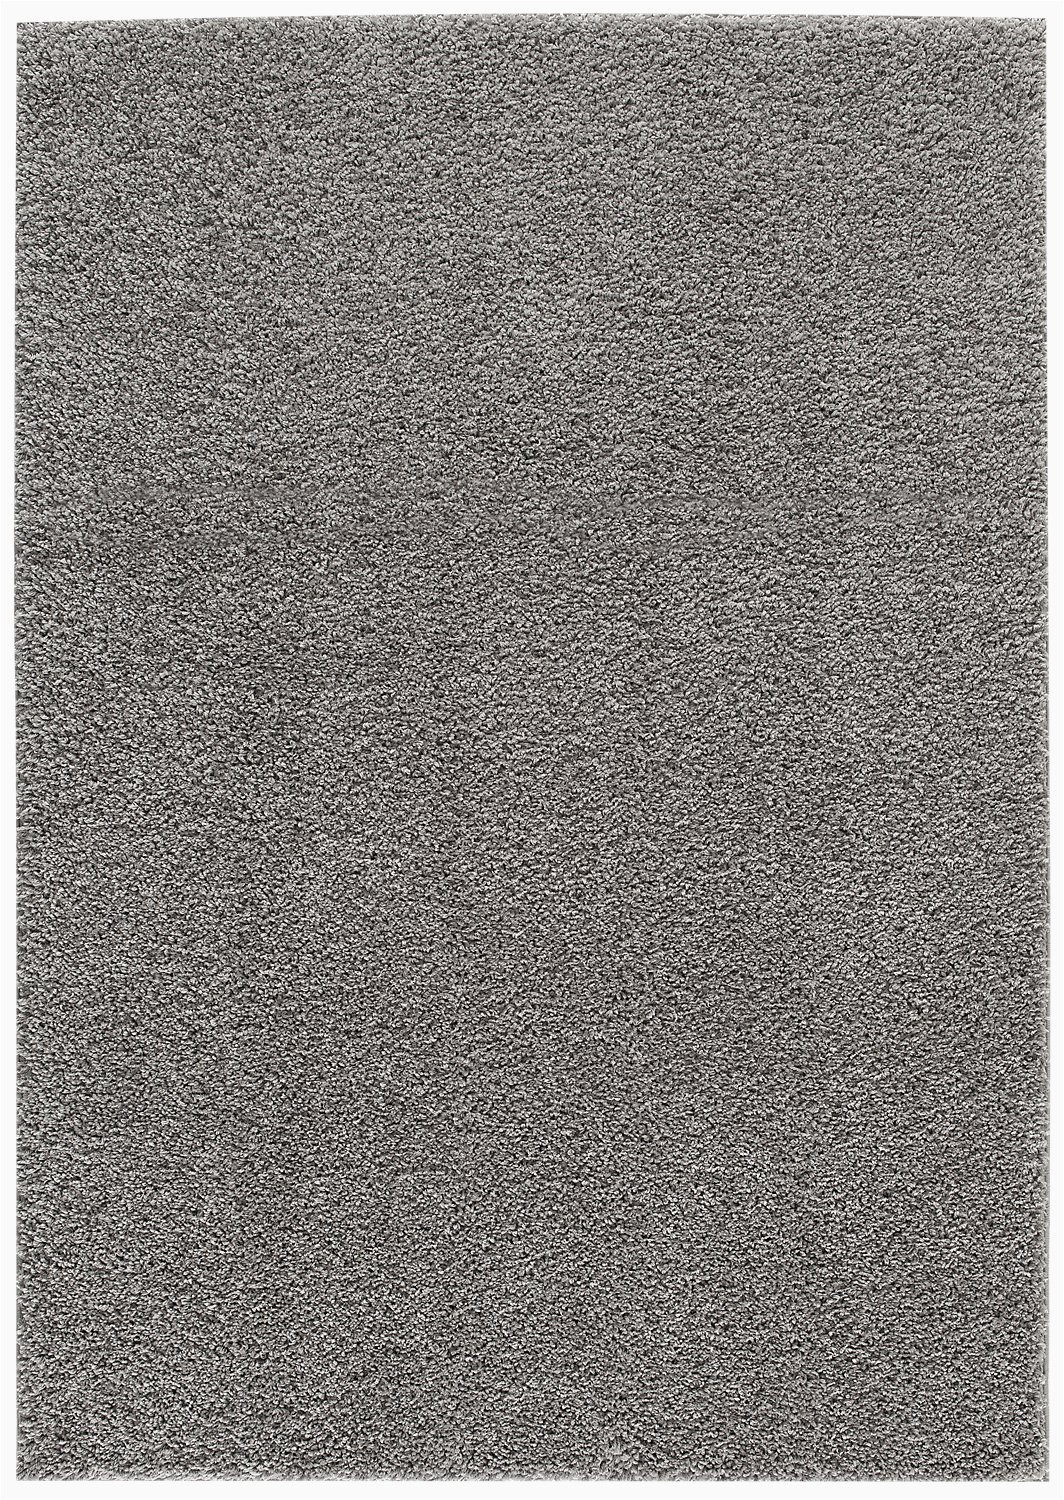 "Grey 5 X 7 area Rug Brooklyn Grey Shag area Rug 5 3"" X 7 5"""